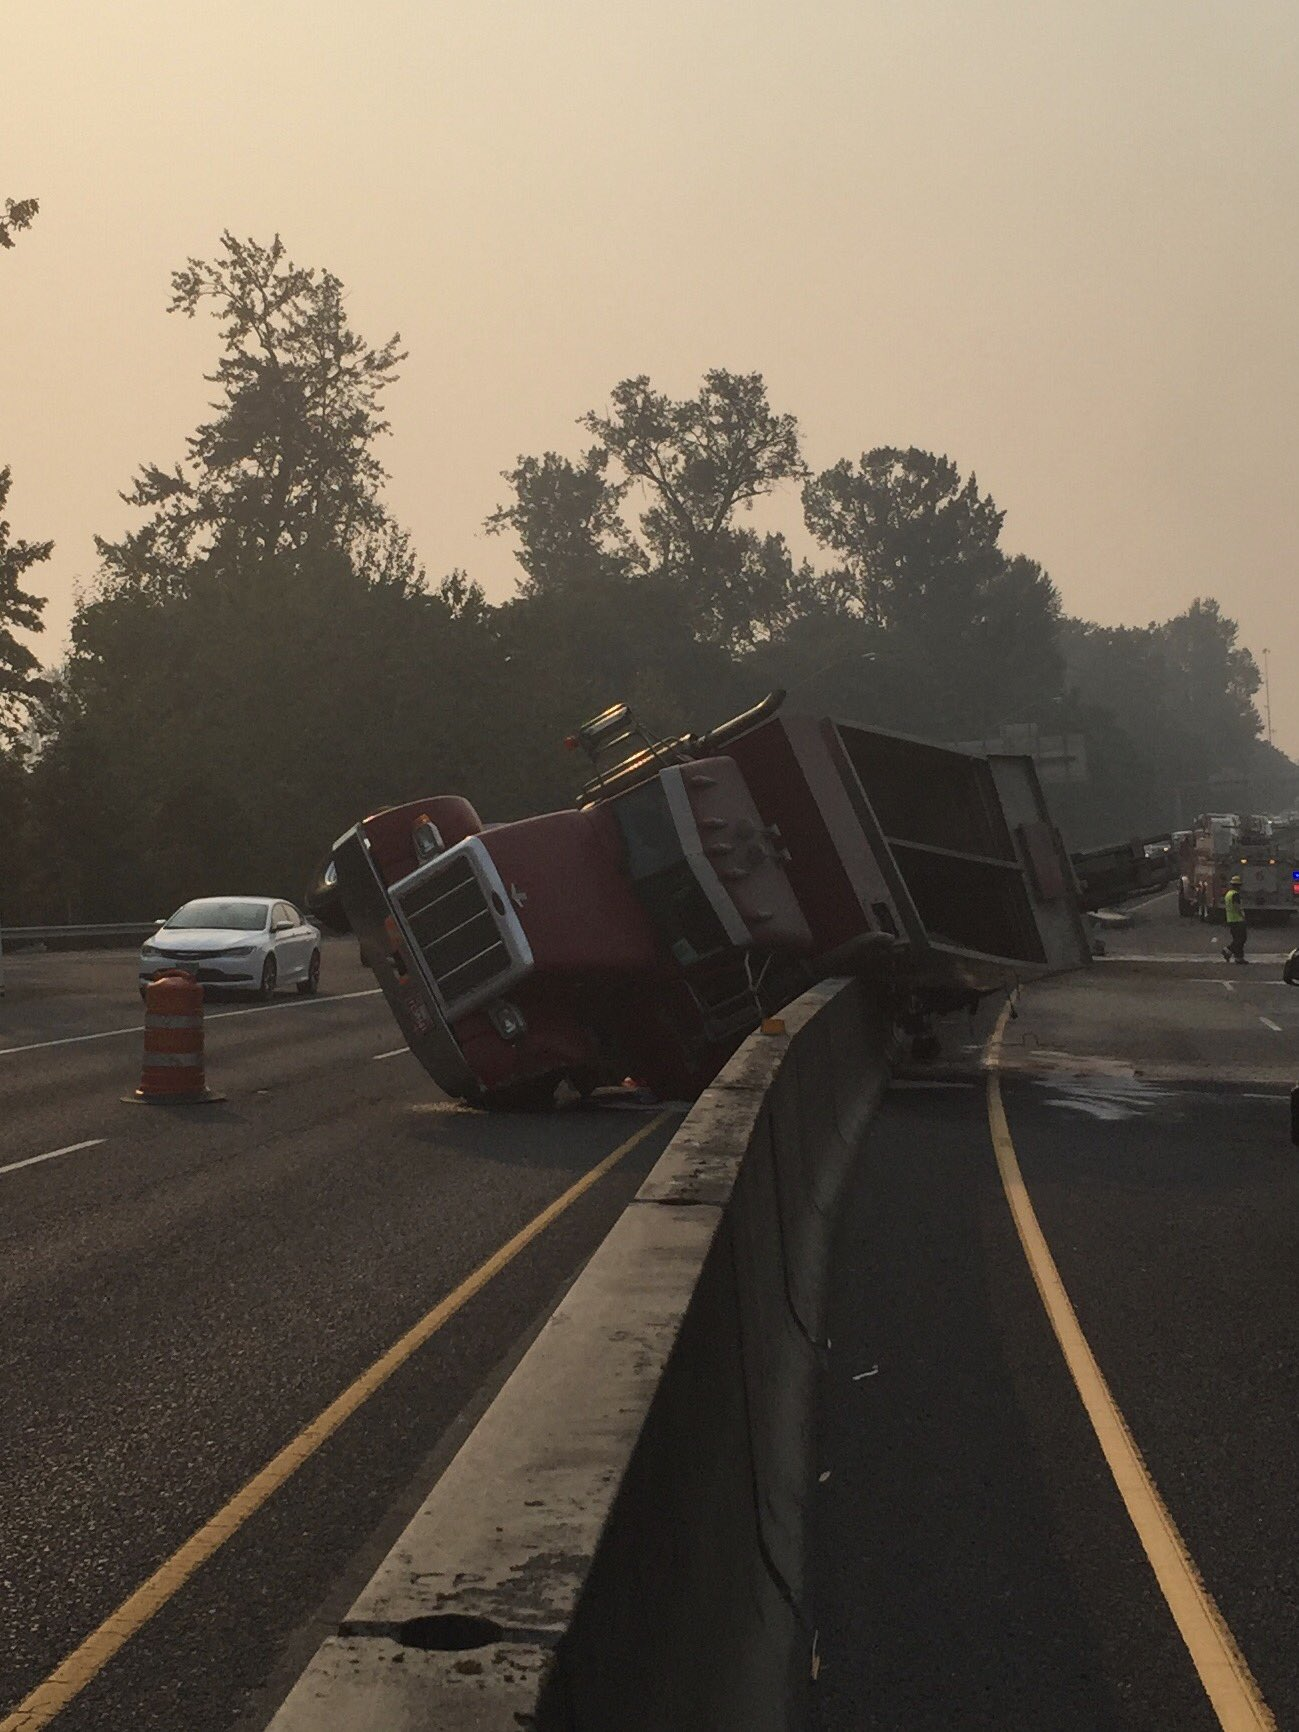 A large truck overturned on I-105 eastbound at the Coburg exit Monday evening. (Photo via Eugene Police)